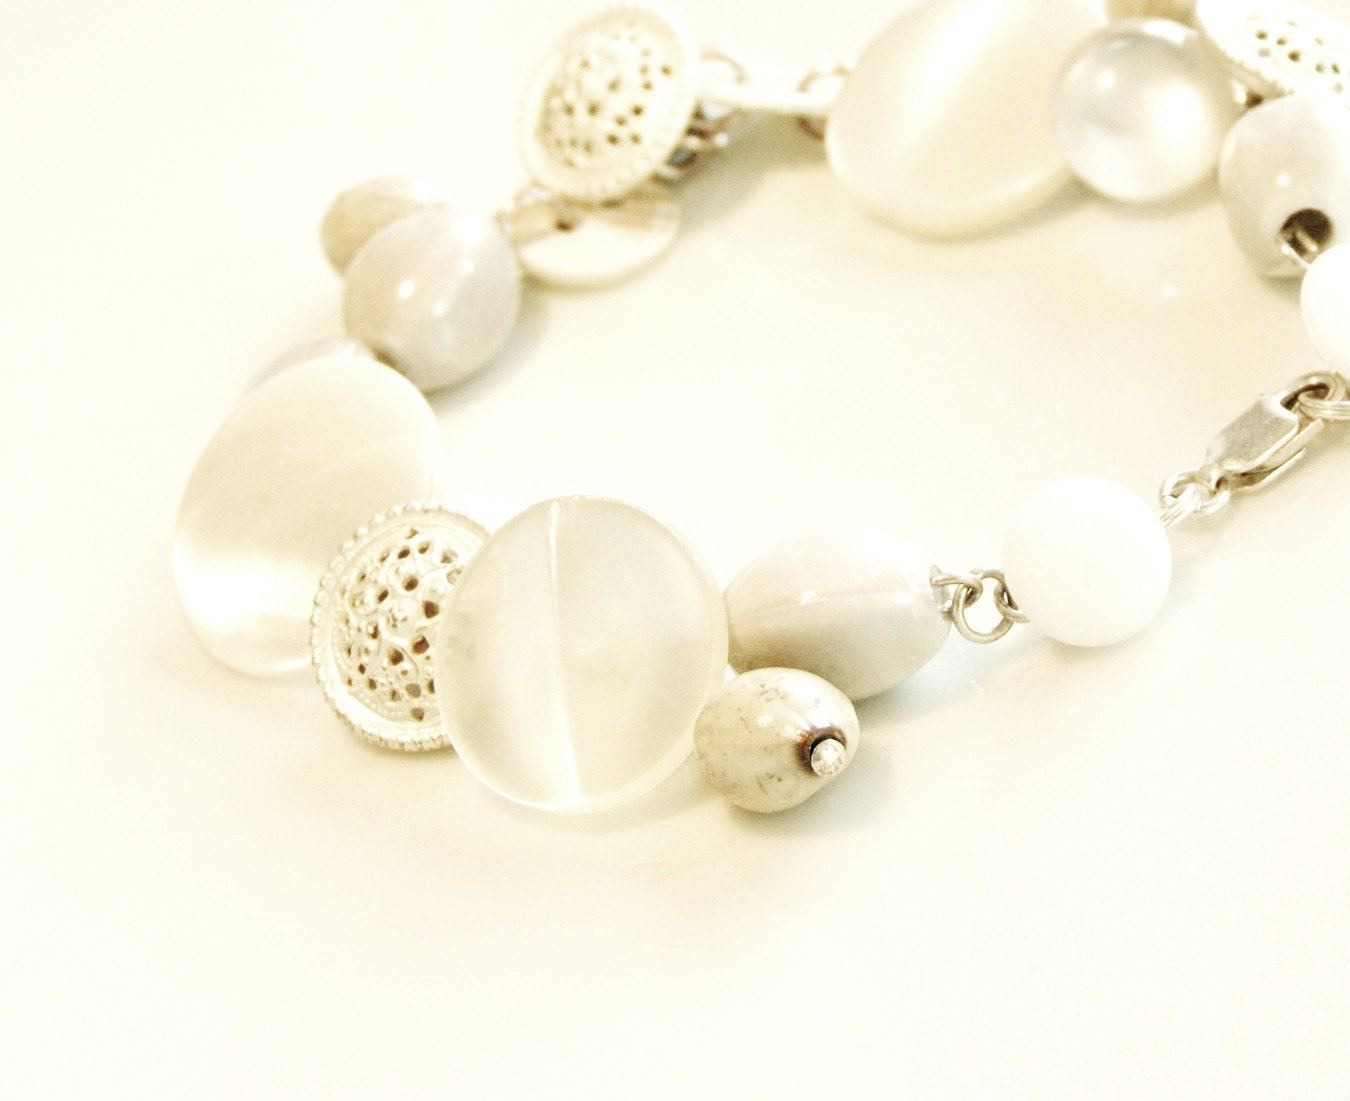 armband 'White Nights'